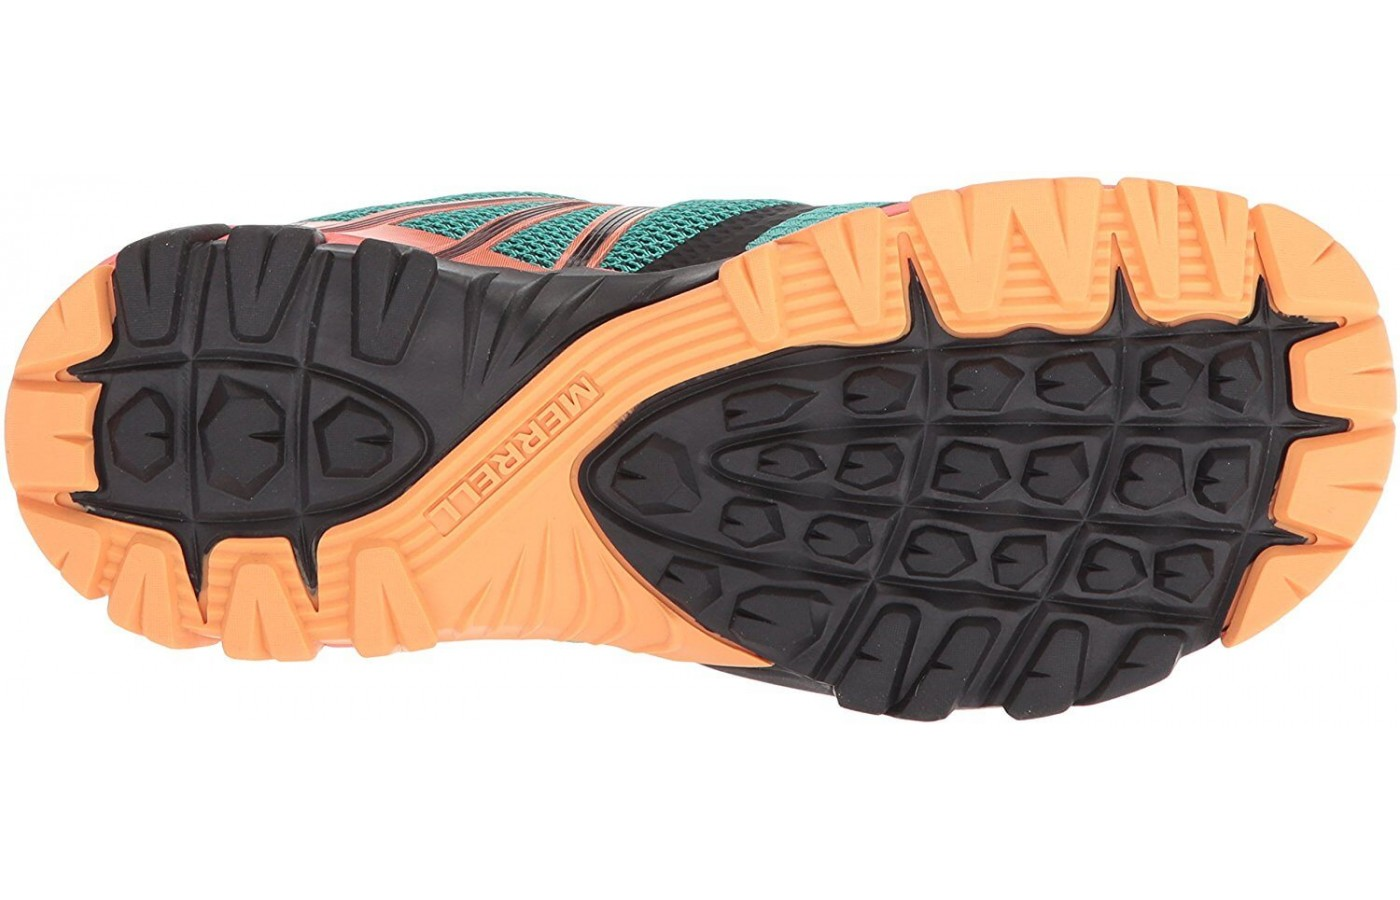 The outsole features 3.5 mm deep lugs